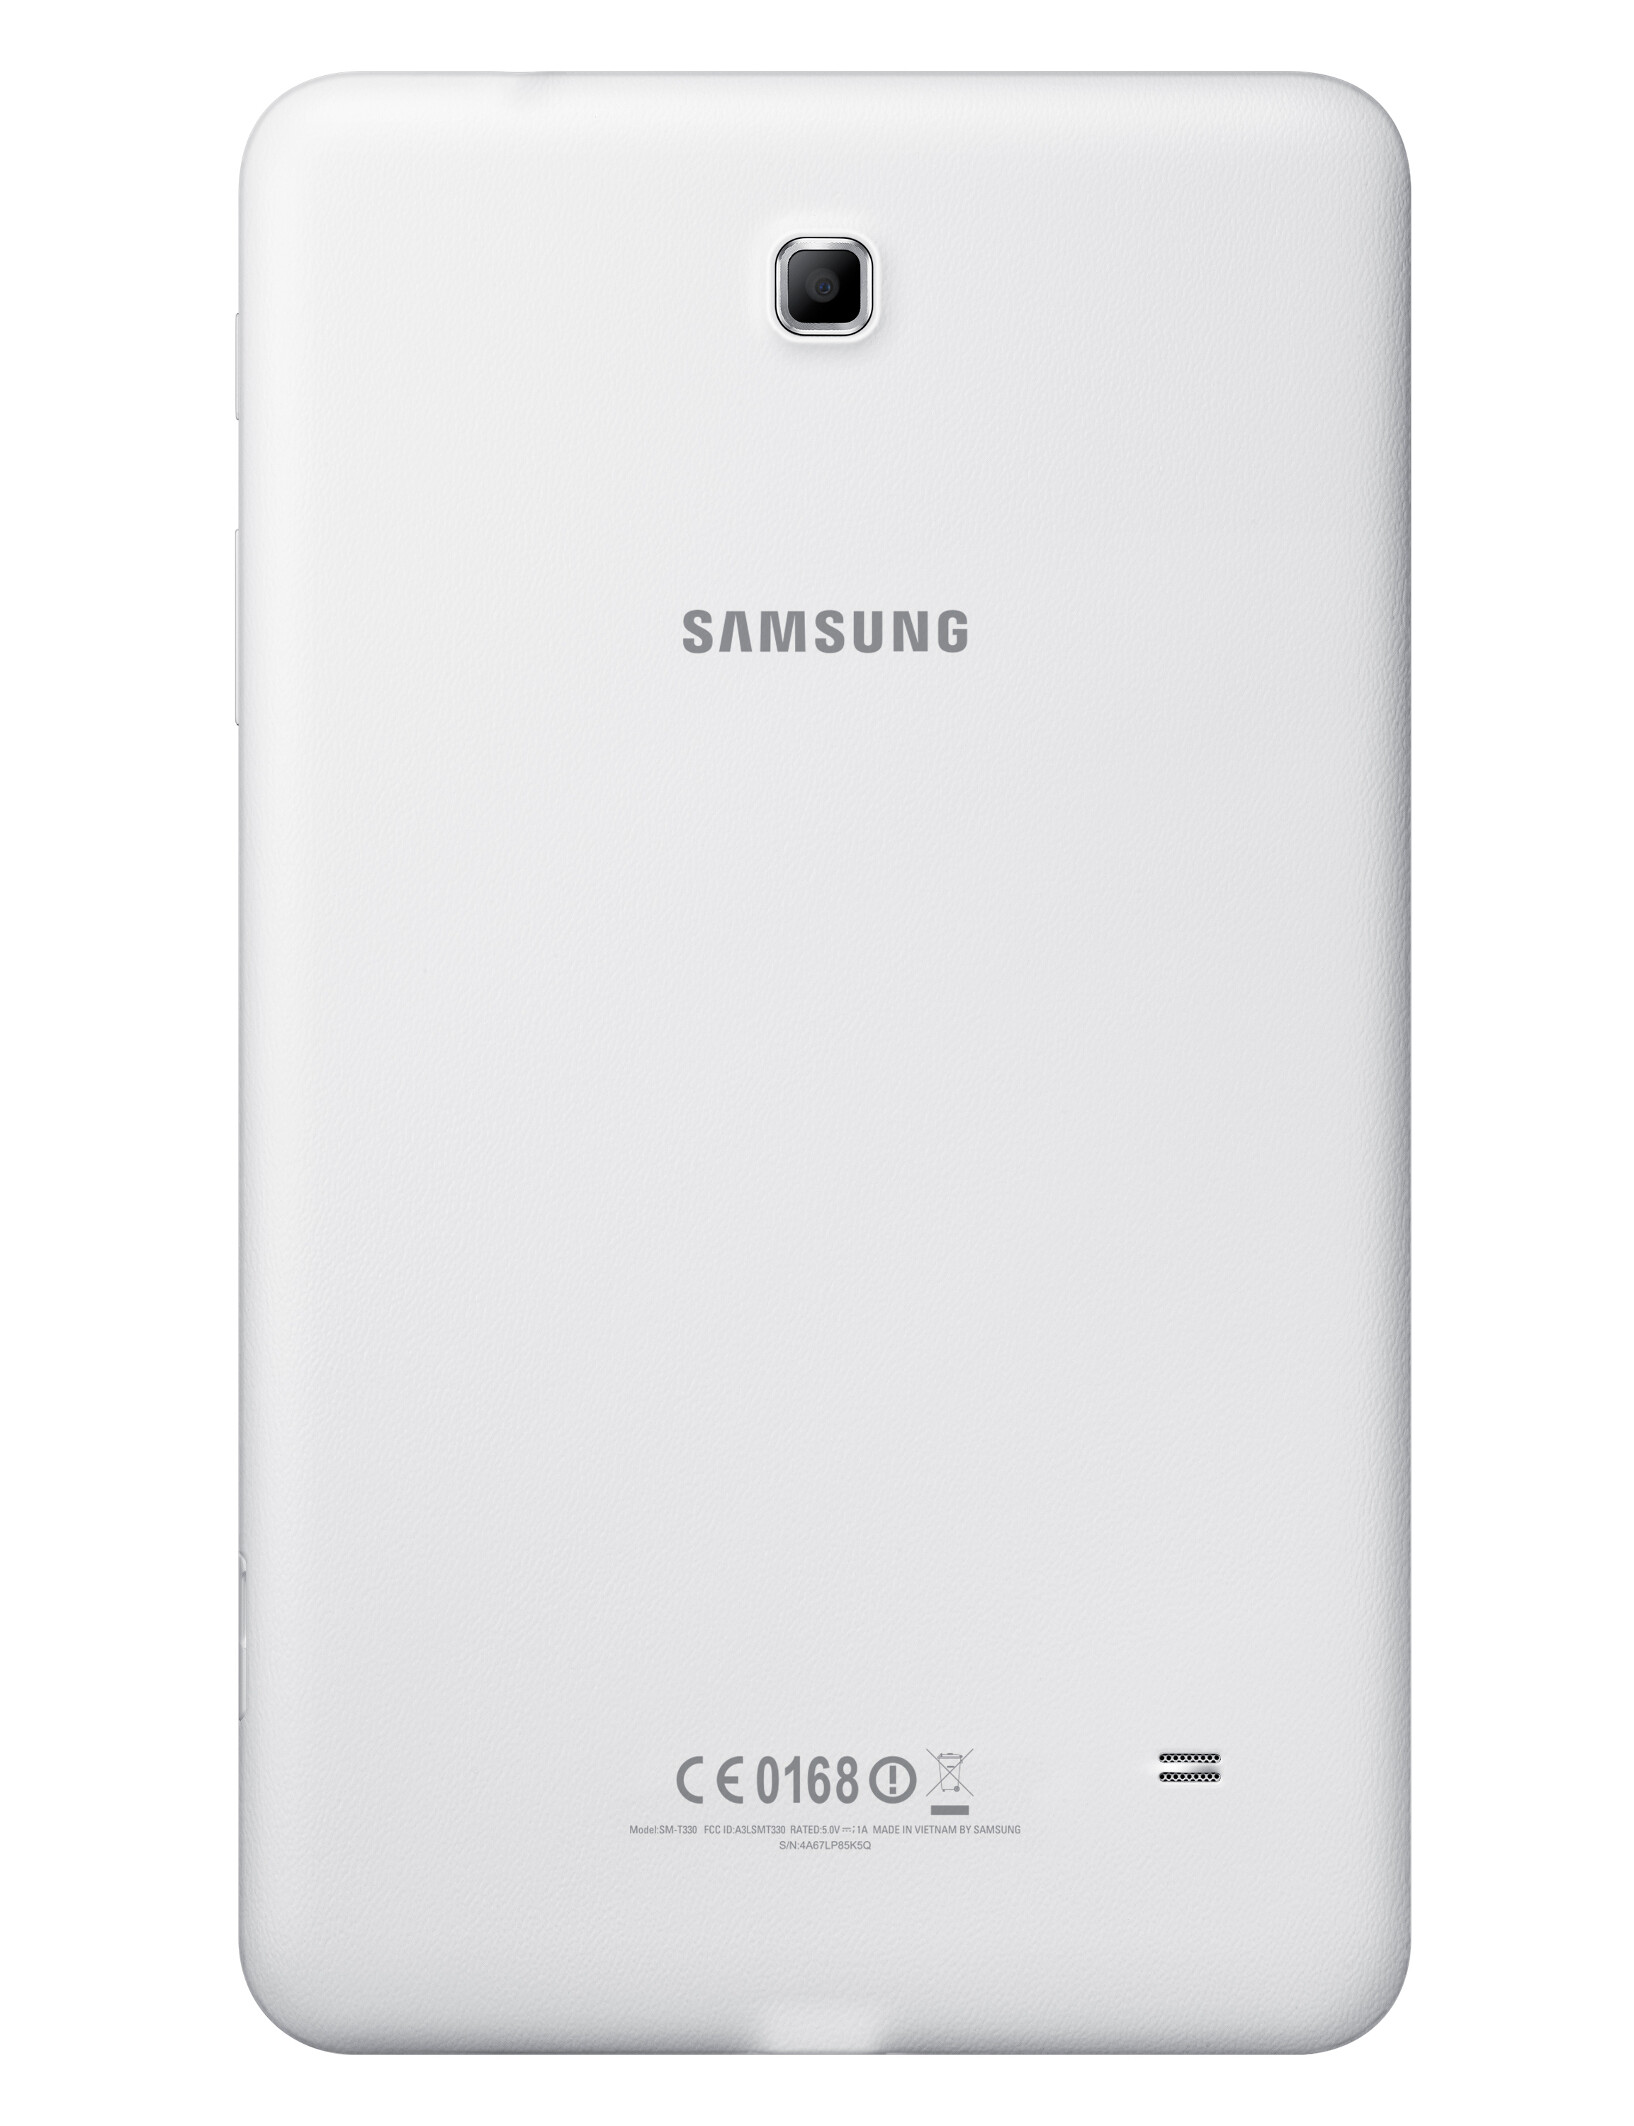 Samsung galaxy tab 4 8 0 specs for Samsung galaxy 4 tablet